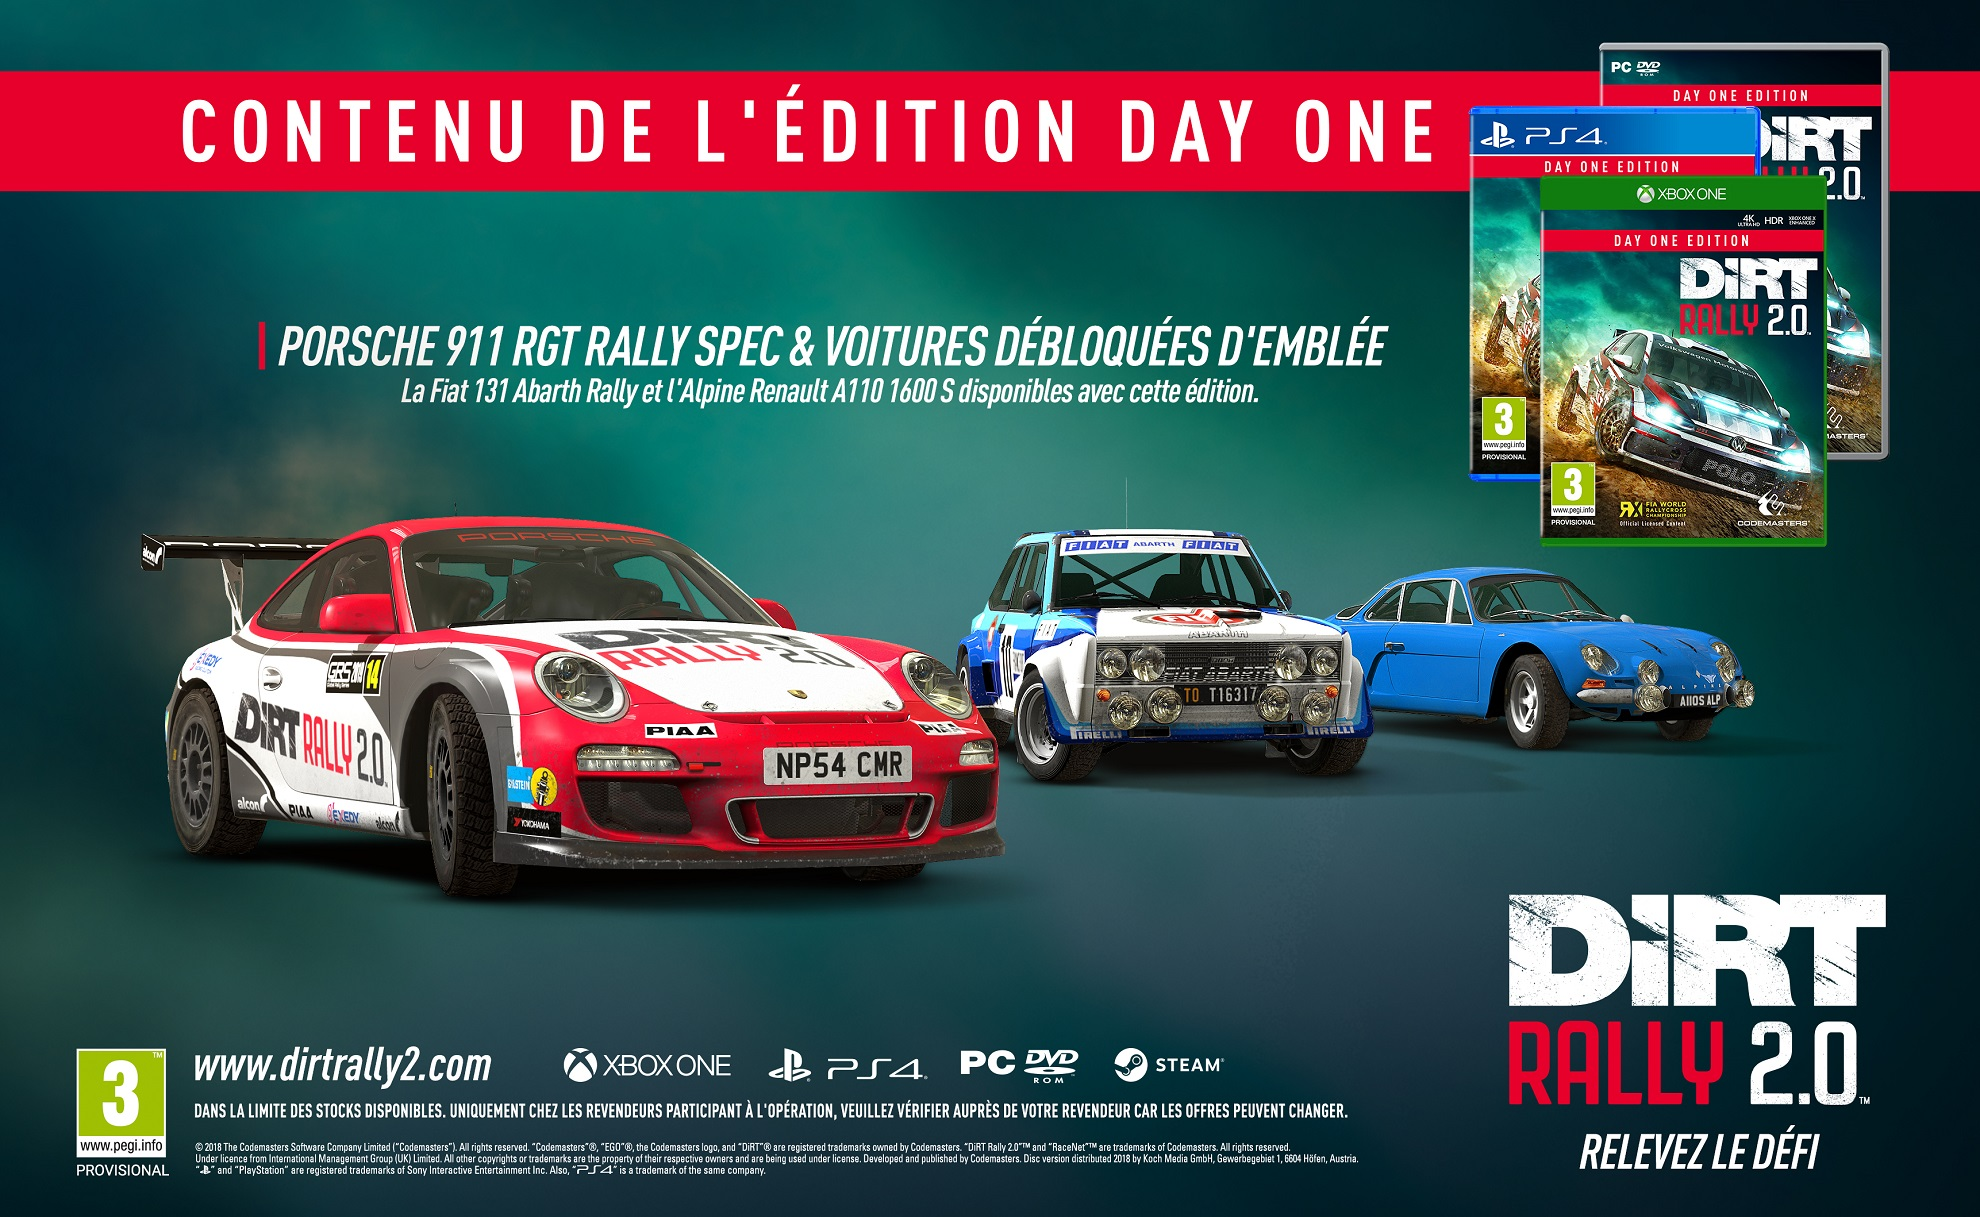 dirt rally 2 0 contenu des diff rentes ditions geektest. Black Bedroom Furniture Sets. Home Design Ideas